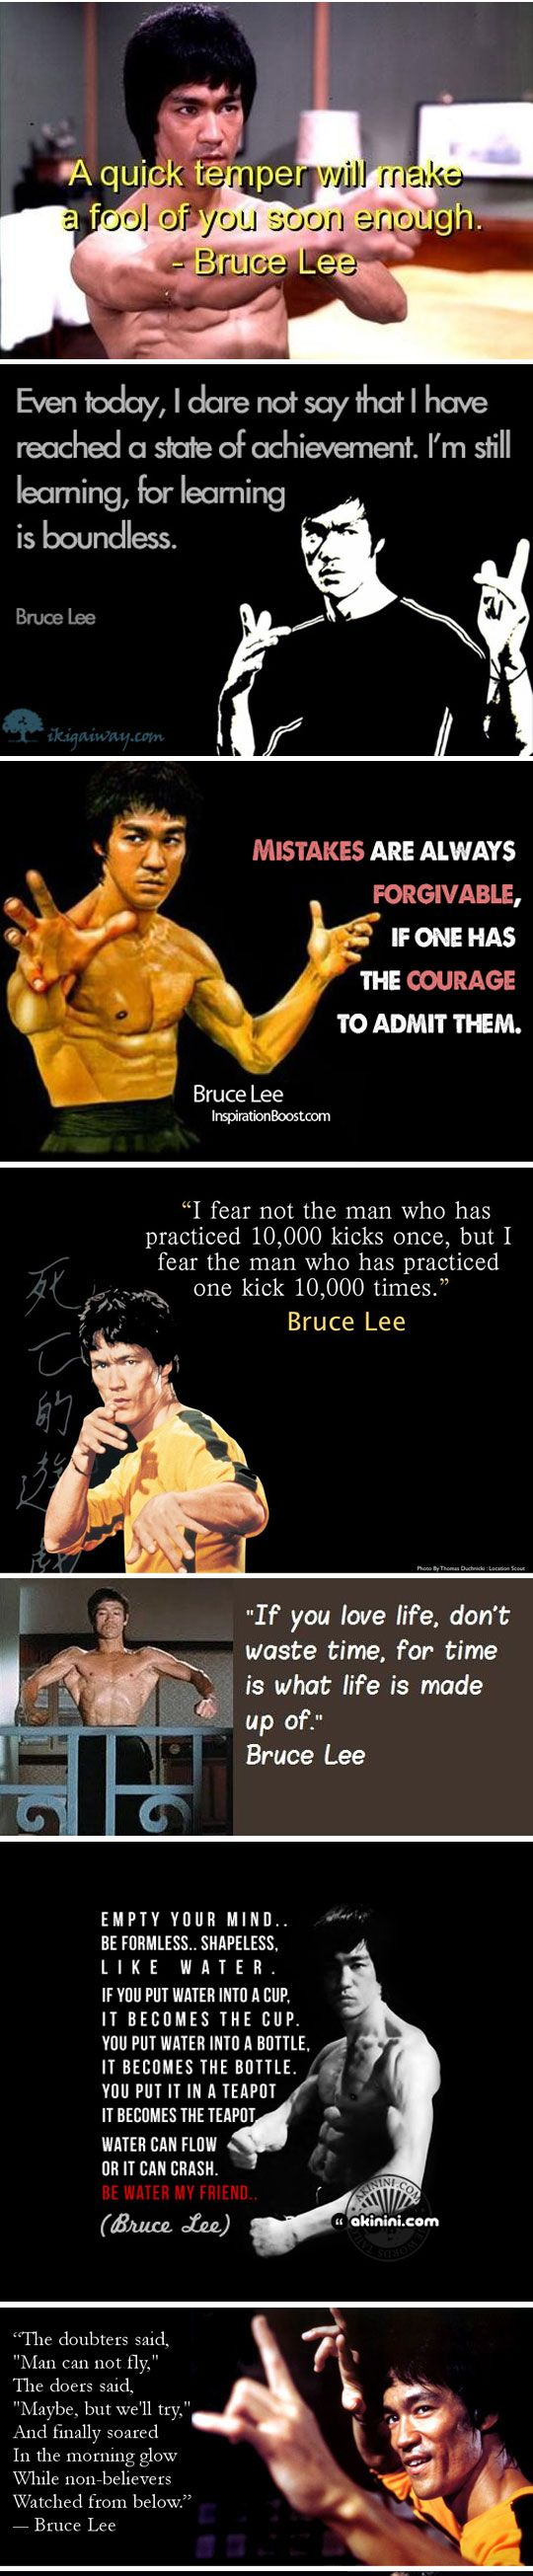 Just A Little Bruce Lee  (I should make a board just for him. Growing up with brothers, saw several movies, then saw interviews with Bruce and discovered what an astounding human being he really was.) <3